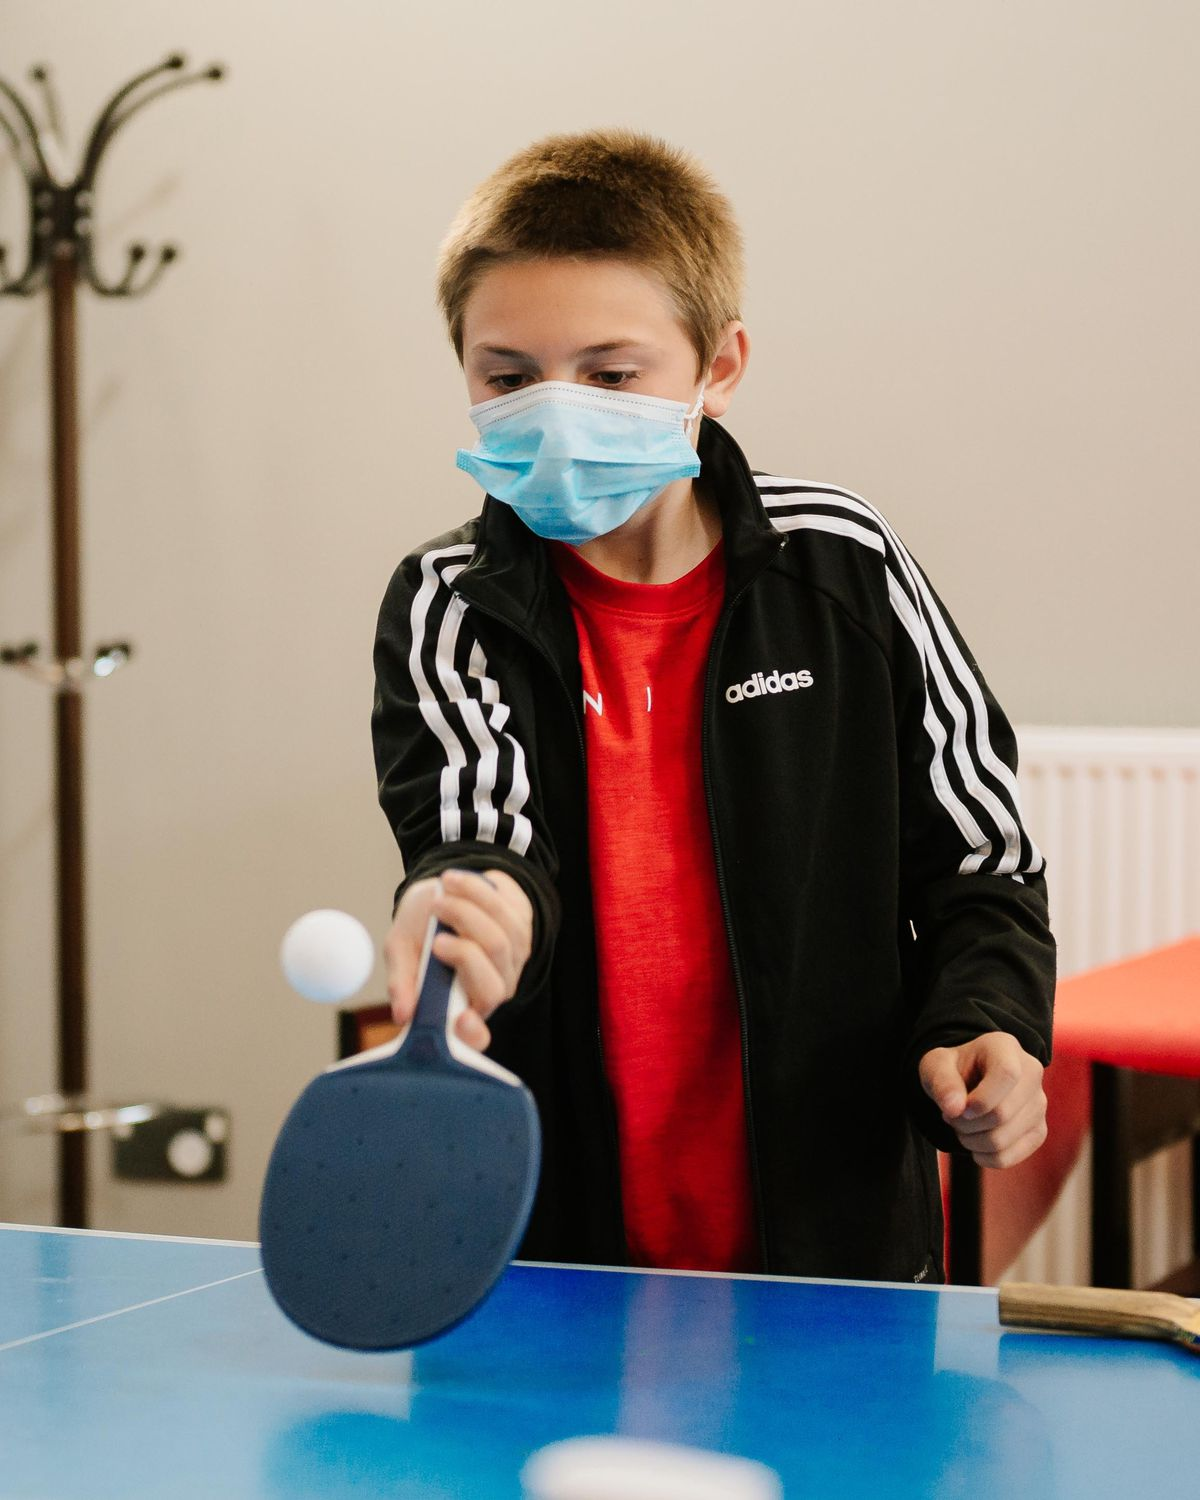 Table tennis is a popular staple